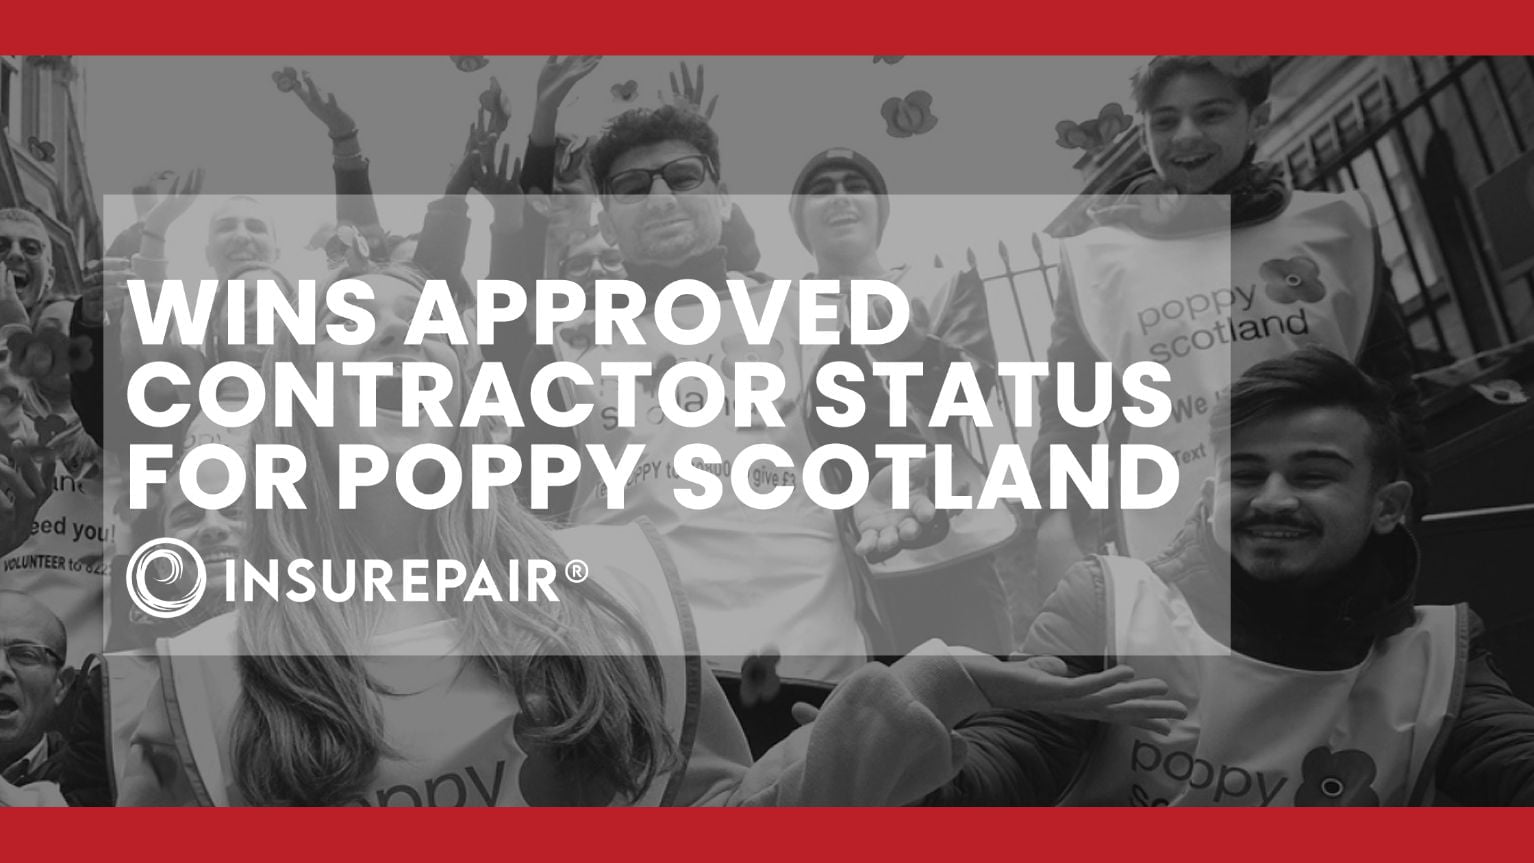 INSUREPAIR ® wins approved contractor status for Poppy Scotland